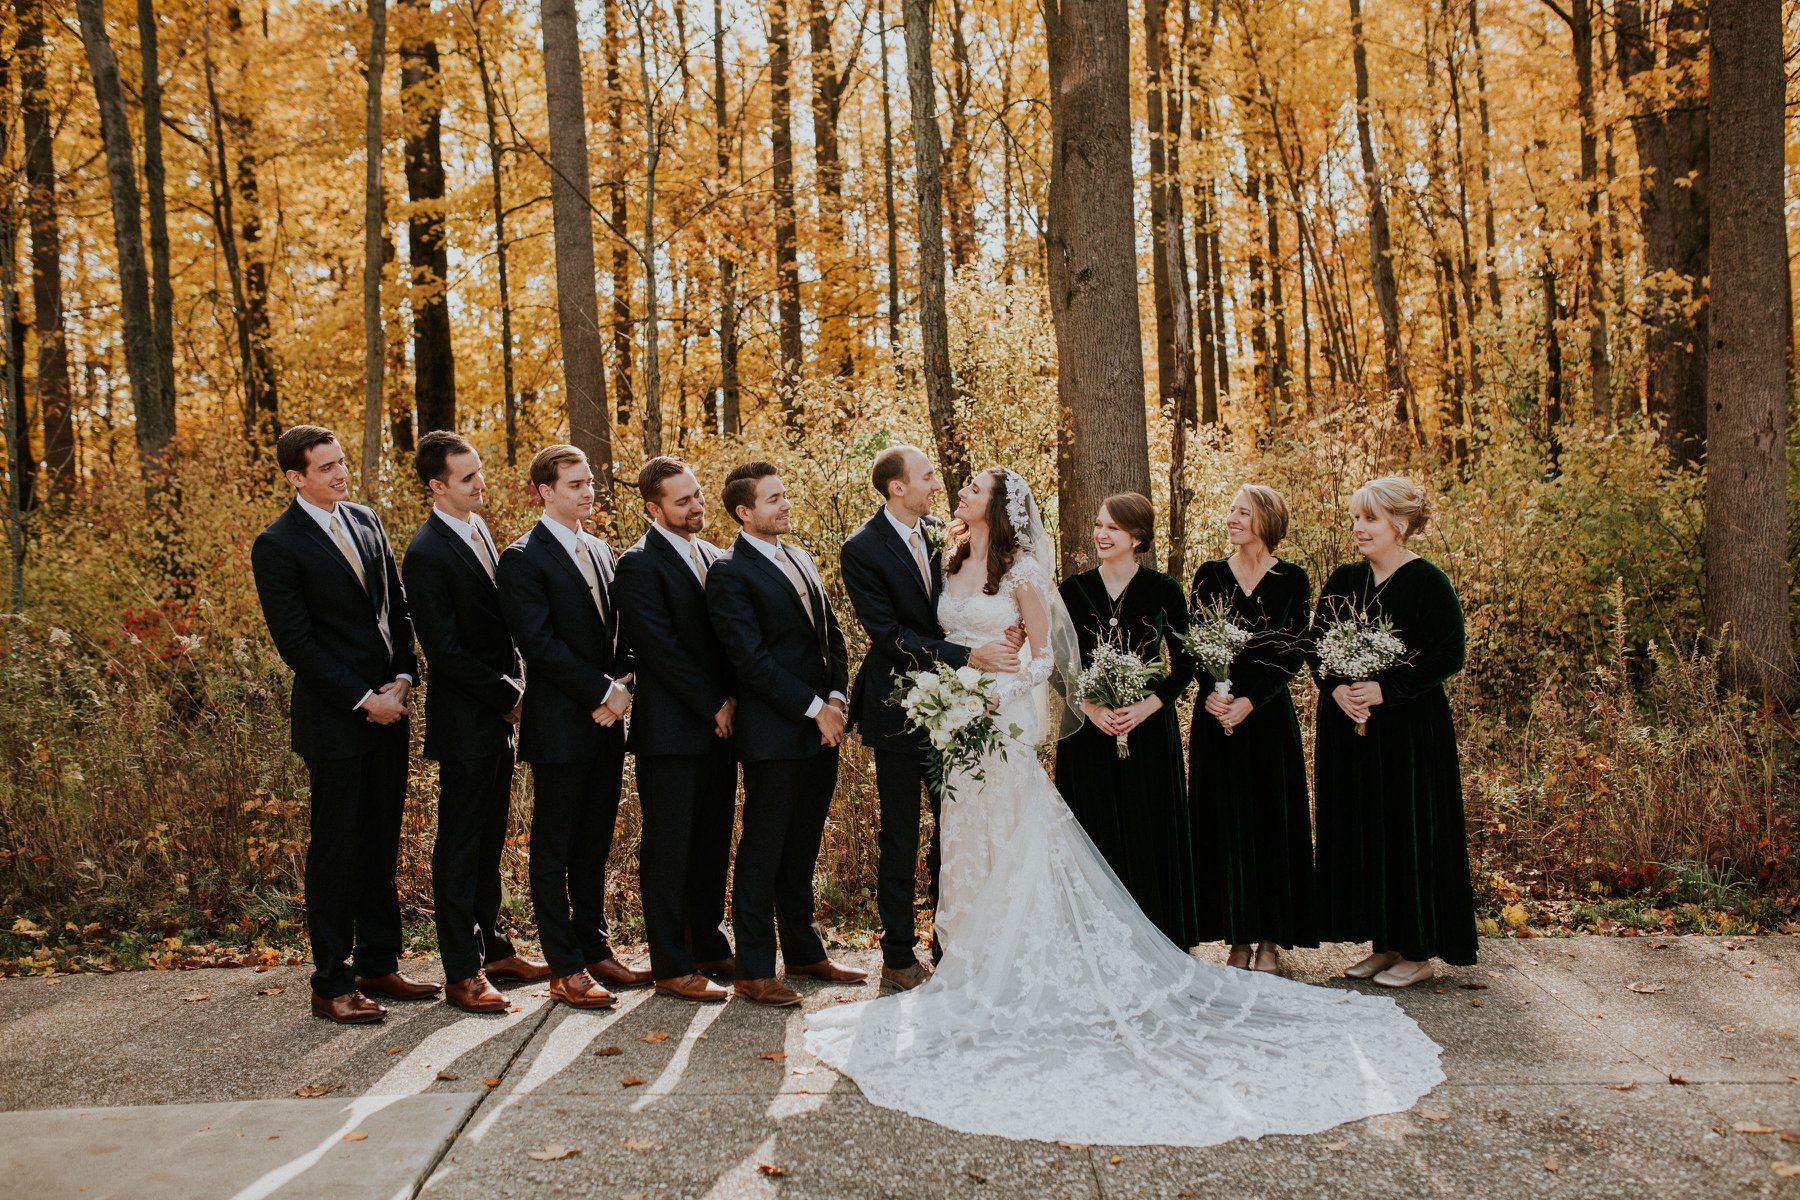 Bridal Party Surrounded by Fall Foliage